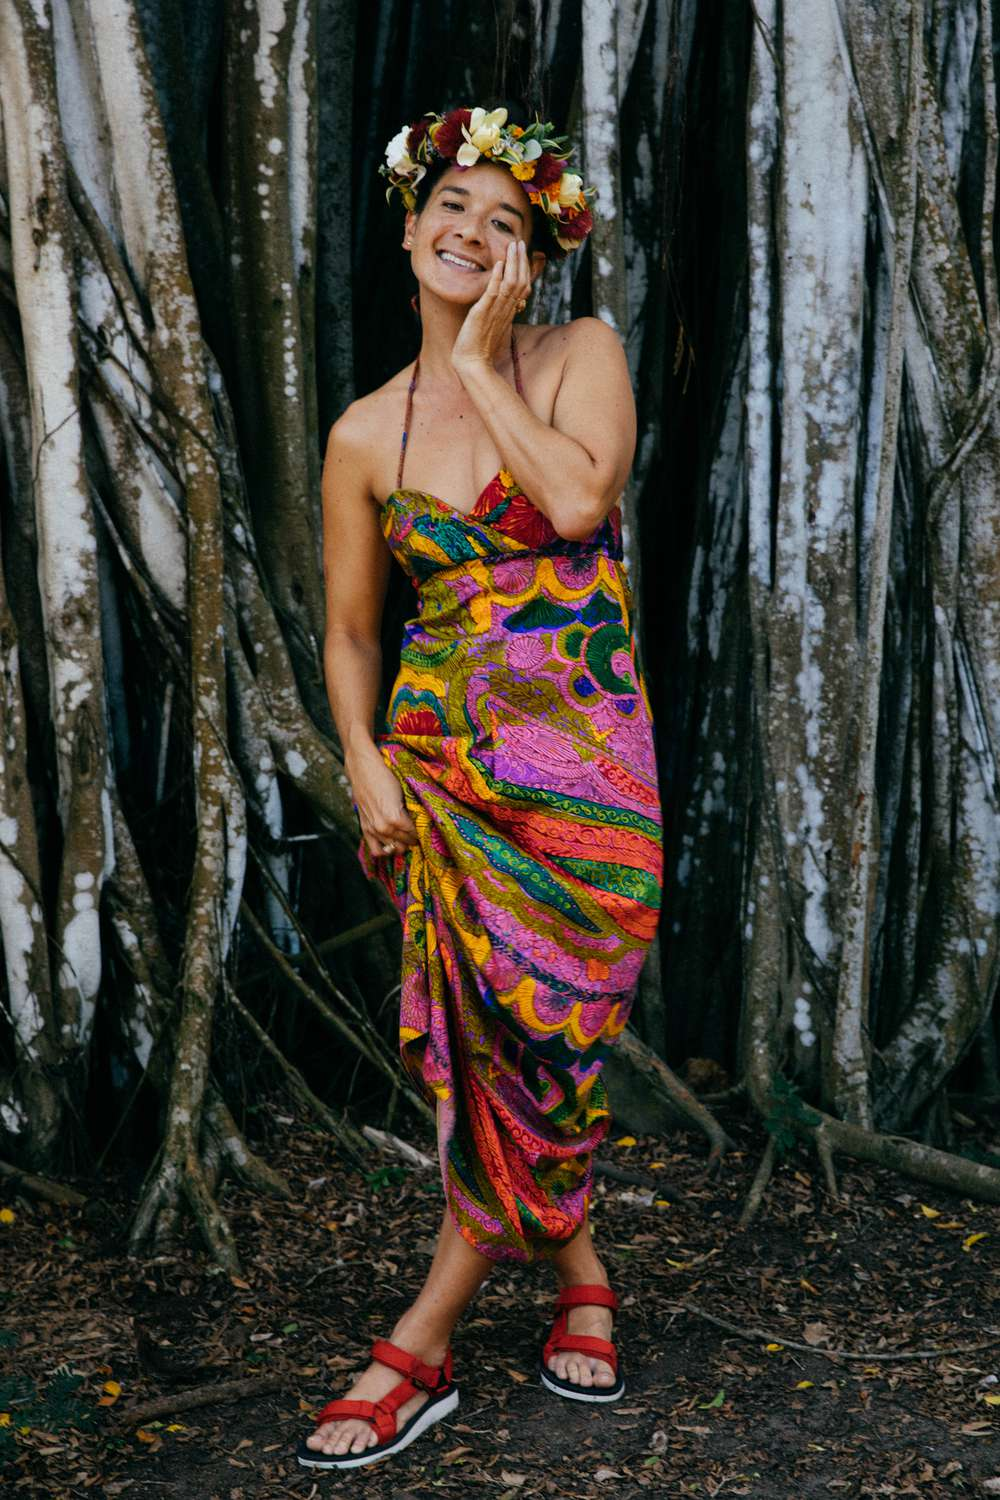 Tara Michie poses by tree in dress and Teva sandals